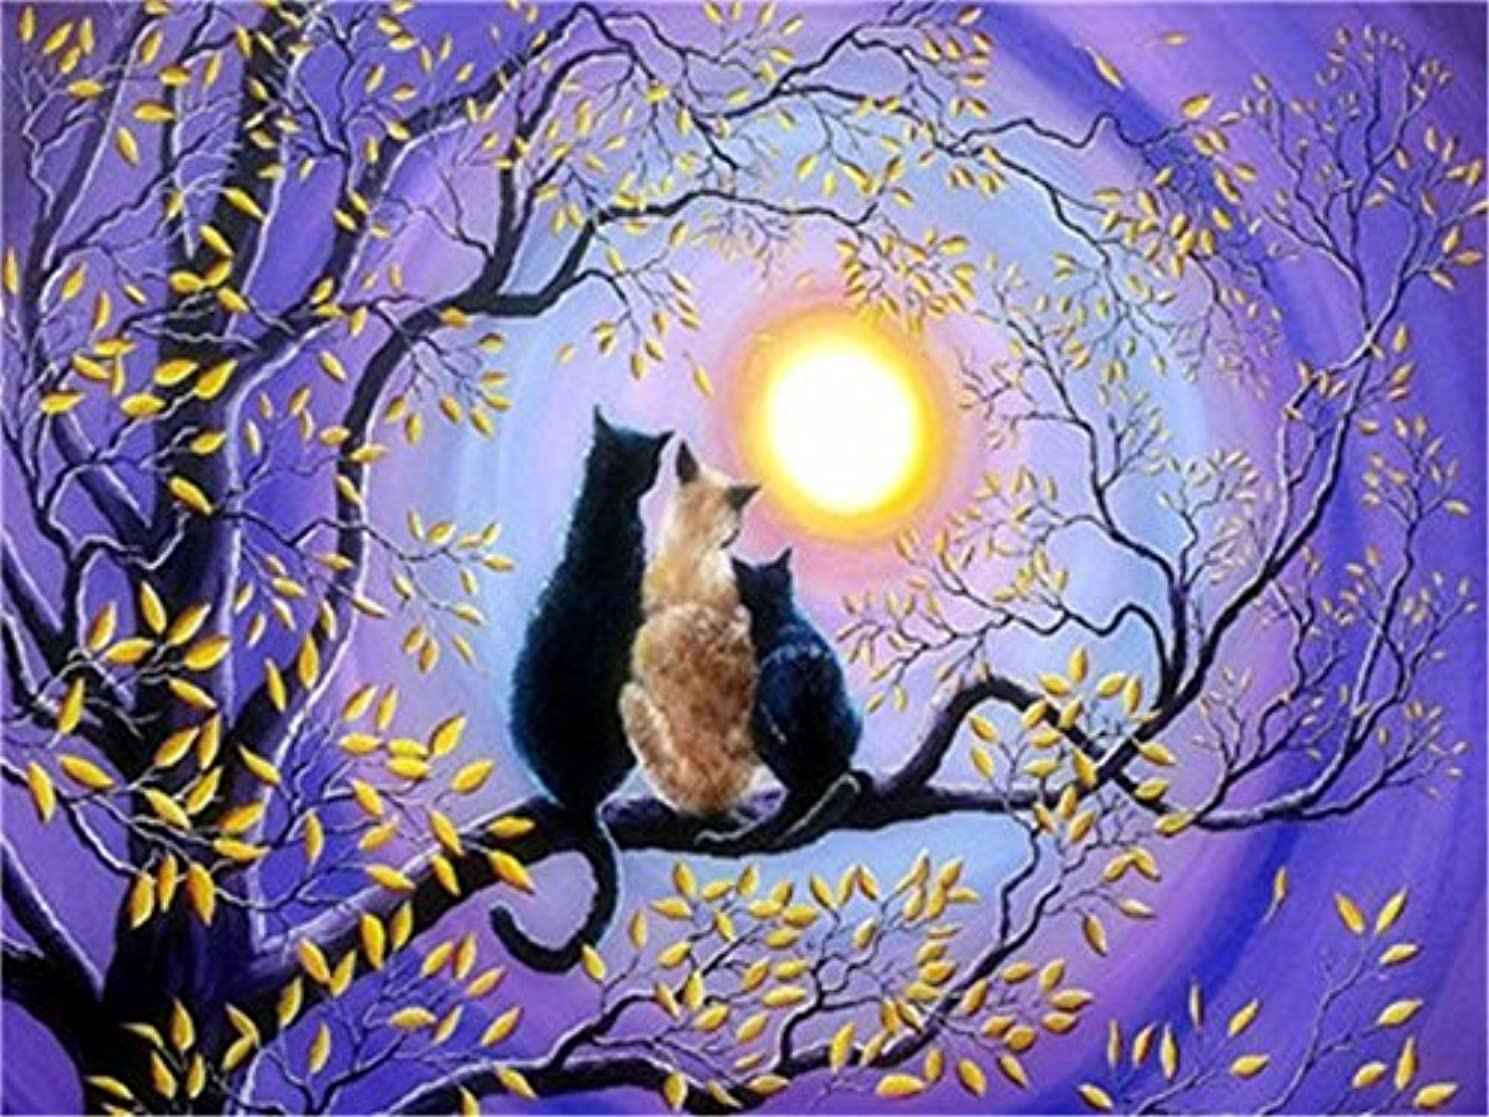 Diy Oil Paint by Number Kit for Adults Beginner 16x20 inch - Tree Cats and Purple Sky, Drawing with Brushes Christmas Decor Decorations Gifts (Frame)